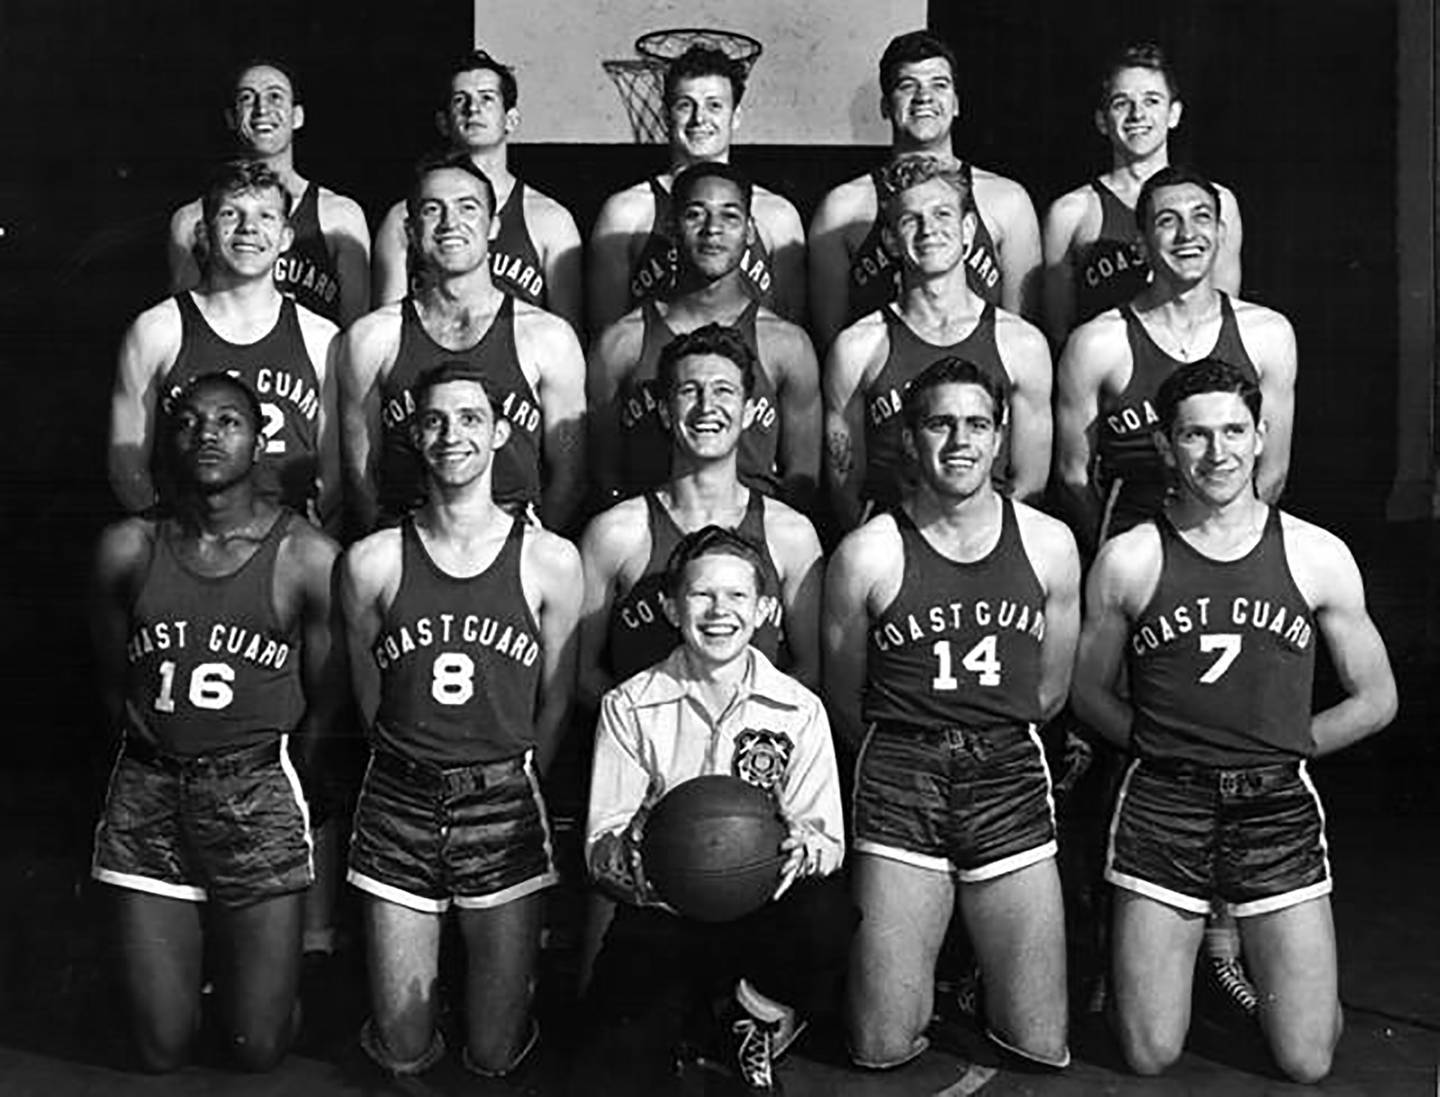 This undated photo provided by United States Coast Guard shows Emlen Tunnell, center, second from top, in a USCG basketball team photo, the first Black player inducted into the Pro Football Hall of Fame.